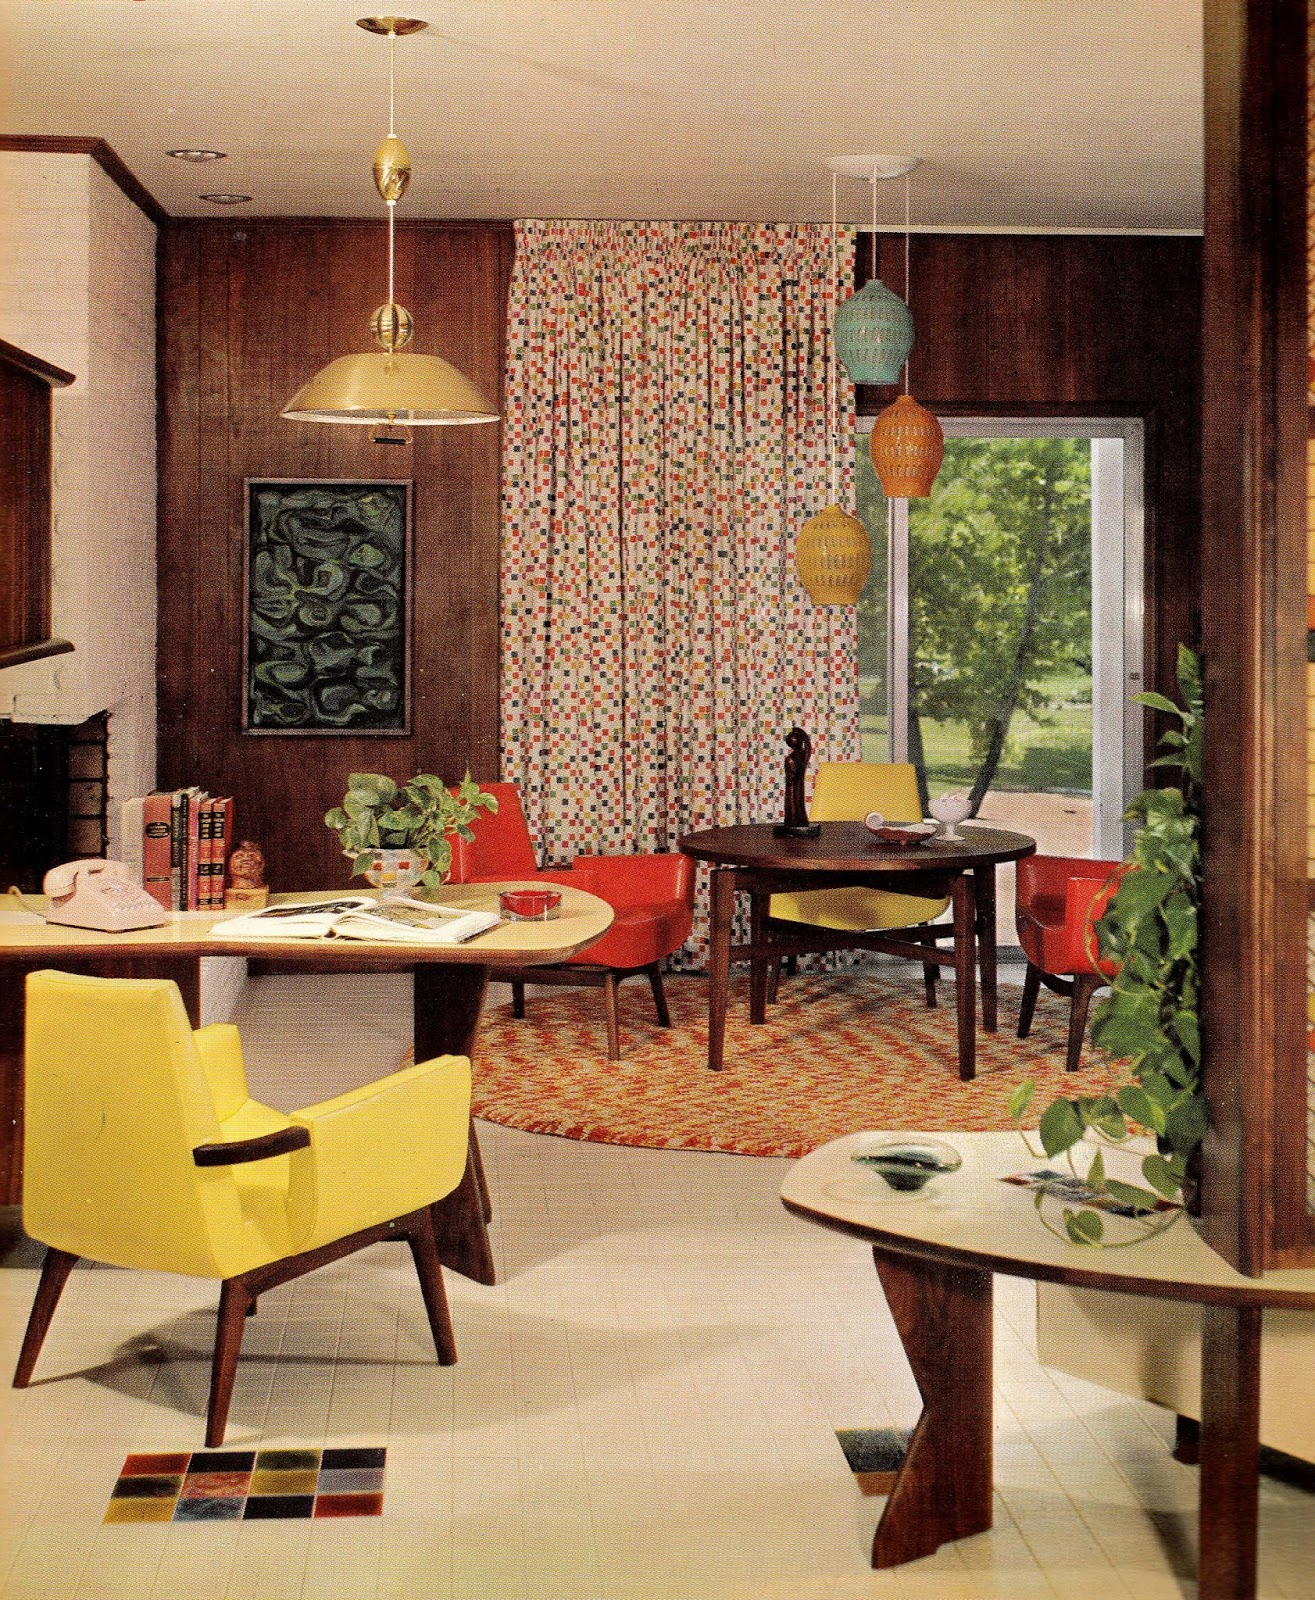 1960s Interior Décor: The Decade of Psychedelia Gave Rise ...